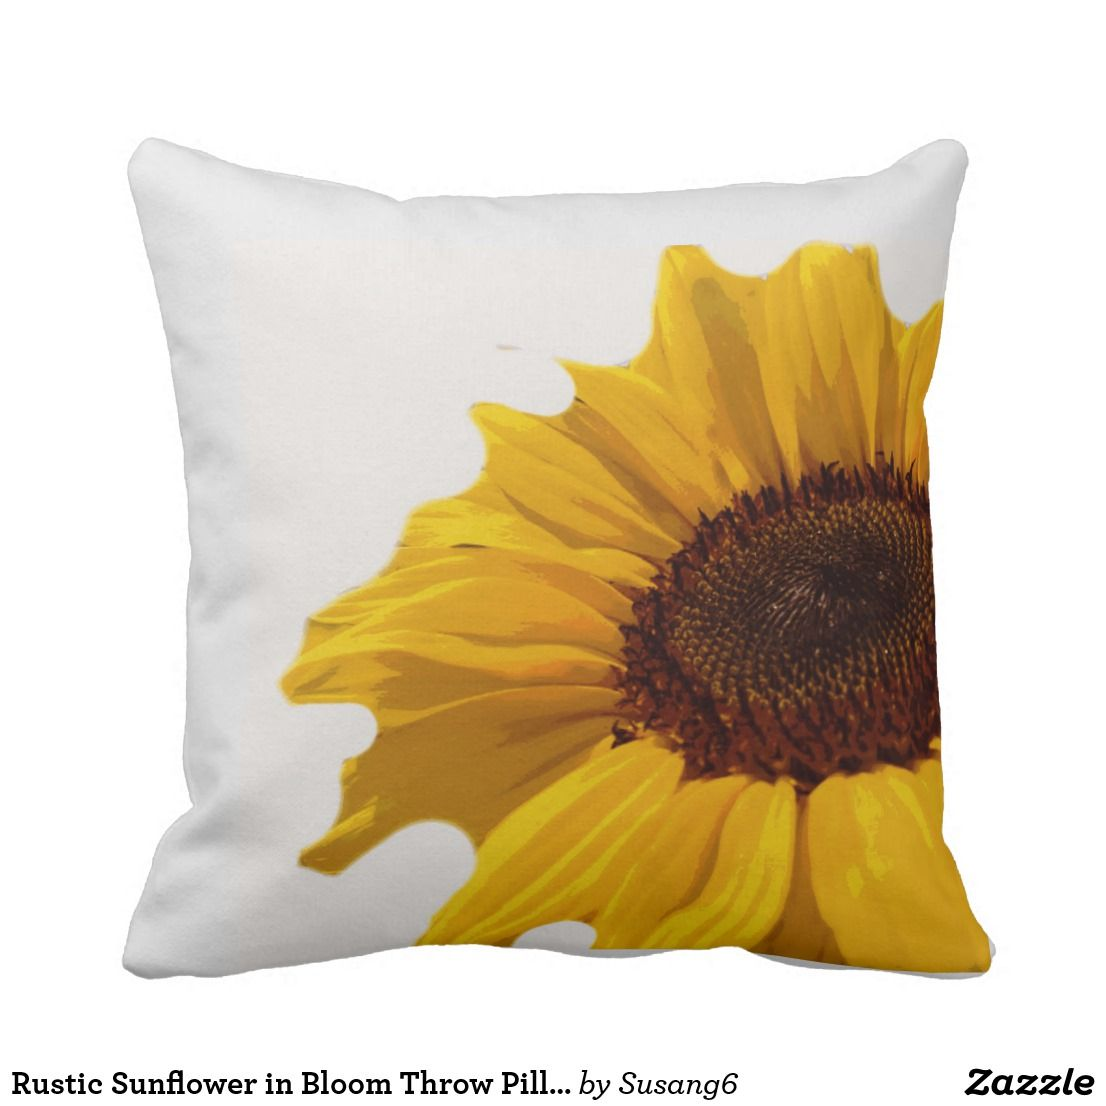 Rustic sunflower in bloom throw pillow